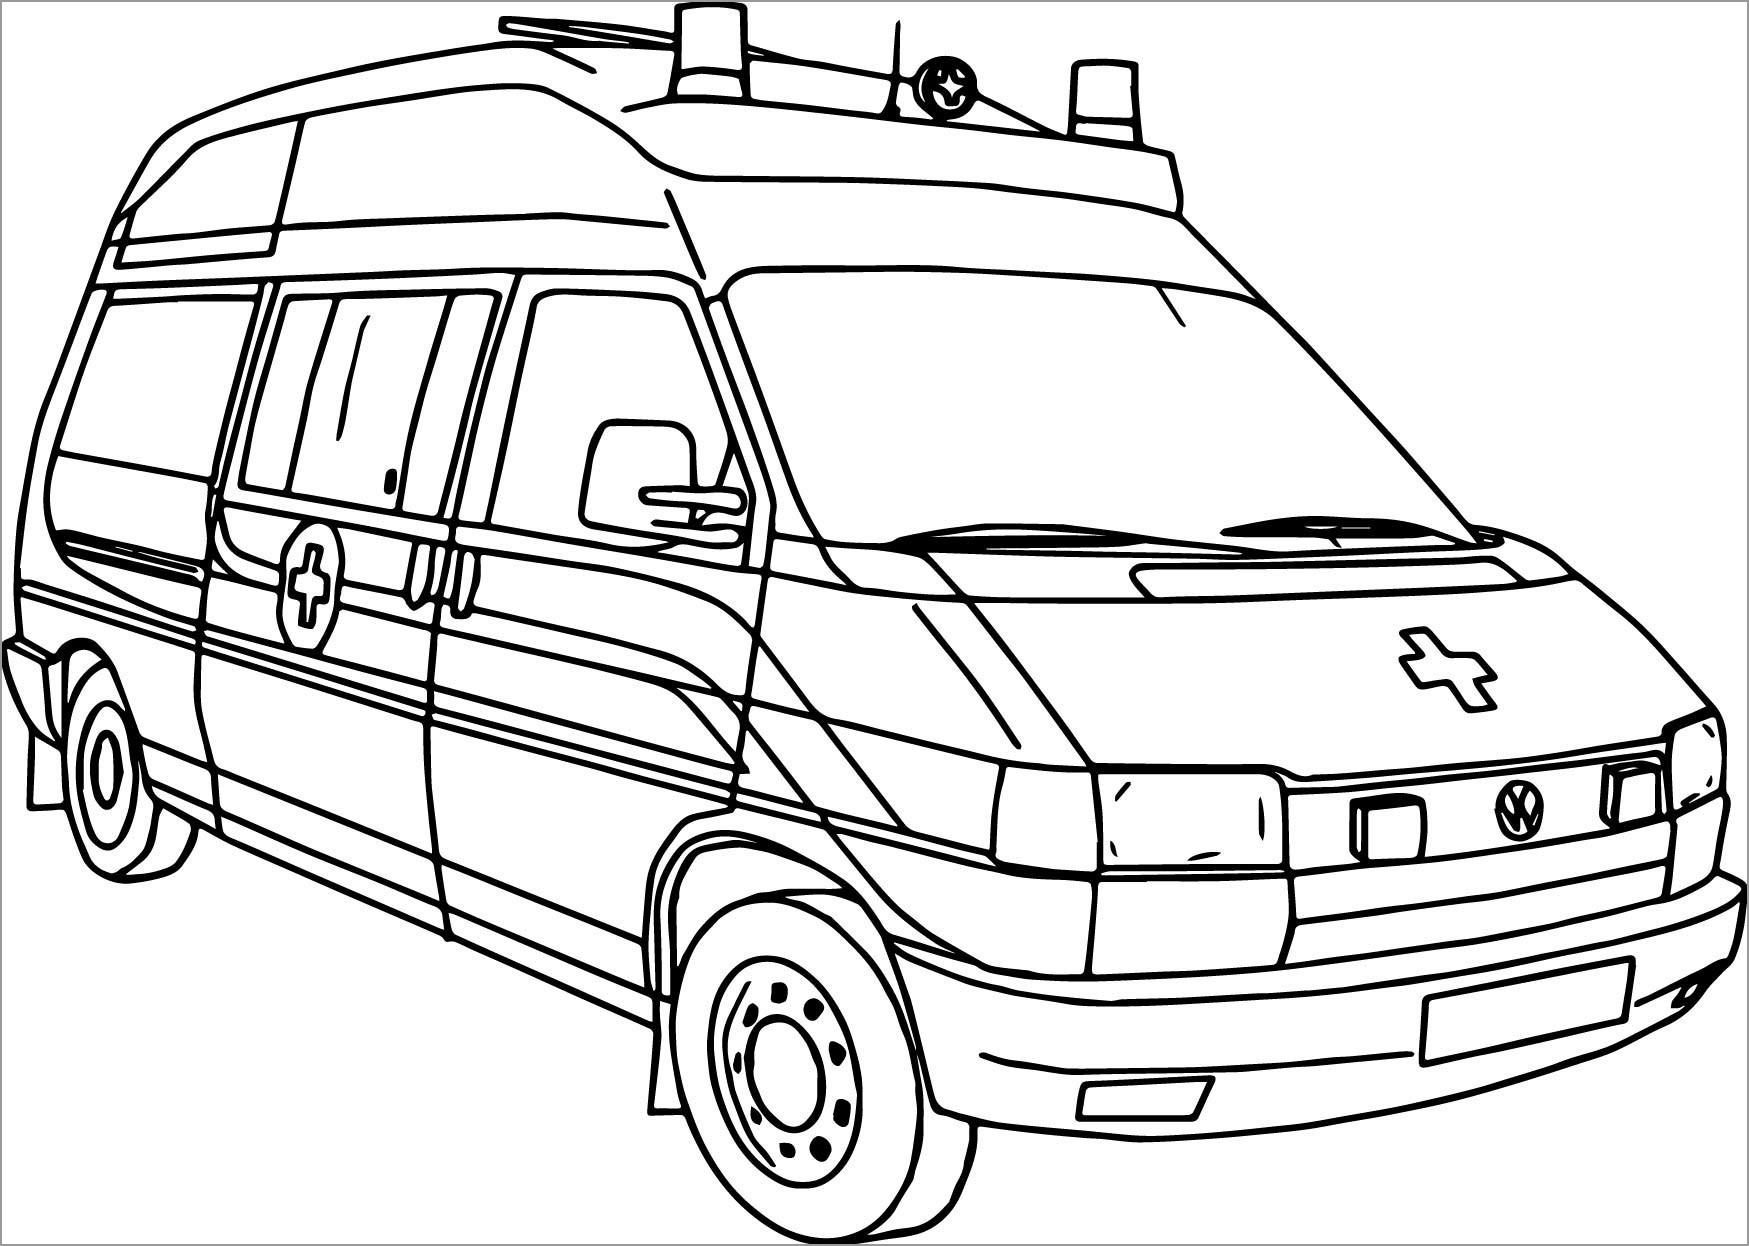 Coloring Page Of Ambulance